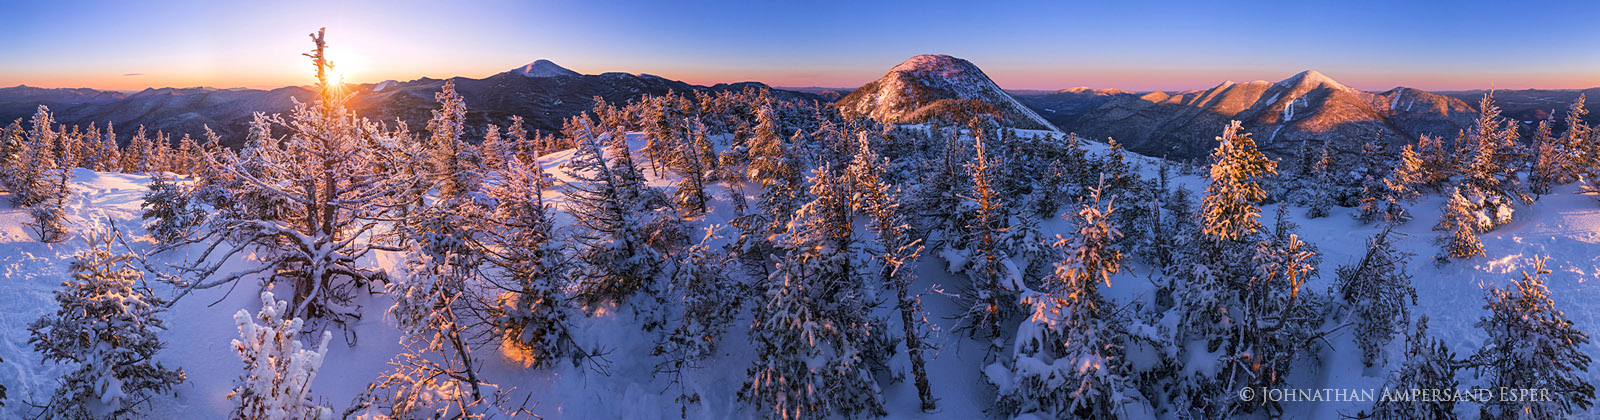 Colden,Mt Colden,High Peaks,Adirondack Mountains,Adirondacks,Adirondack High Peaks,summit,Colden summit,winter,sunrise,360 degree panorama,alpenglow,Johnathan Esper, 2017,Algonquin,, photo